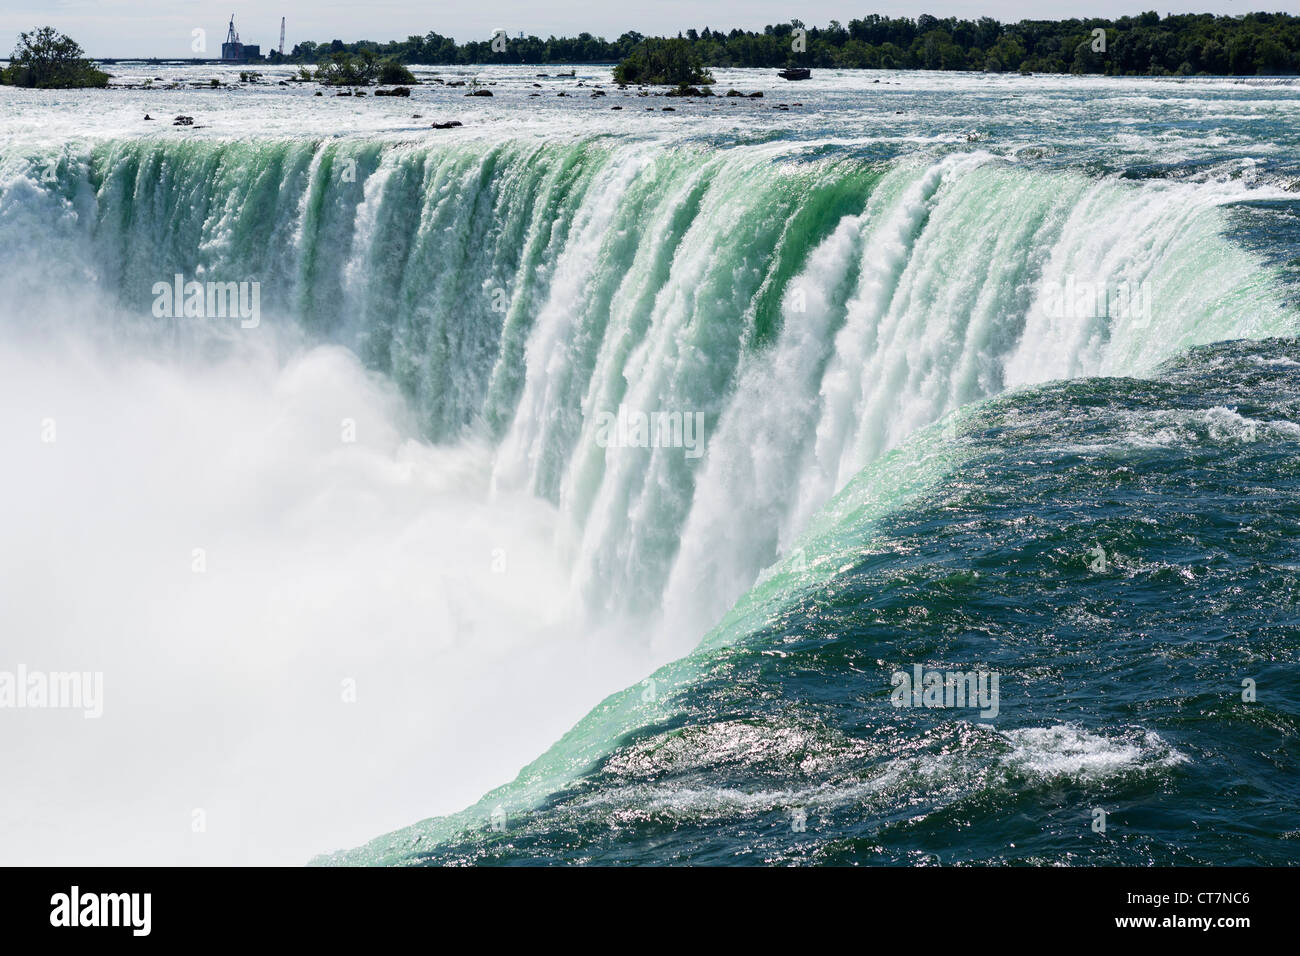 Close-up of the Horseshoe Falls from the Canadian side, Niagara Falls , Ontario, Canada - Stock Image